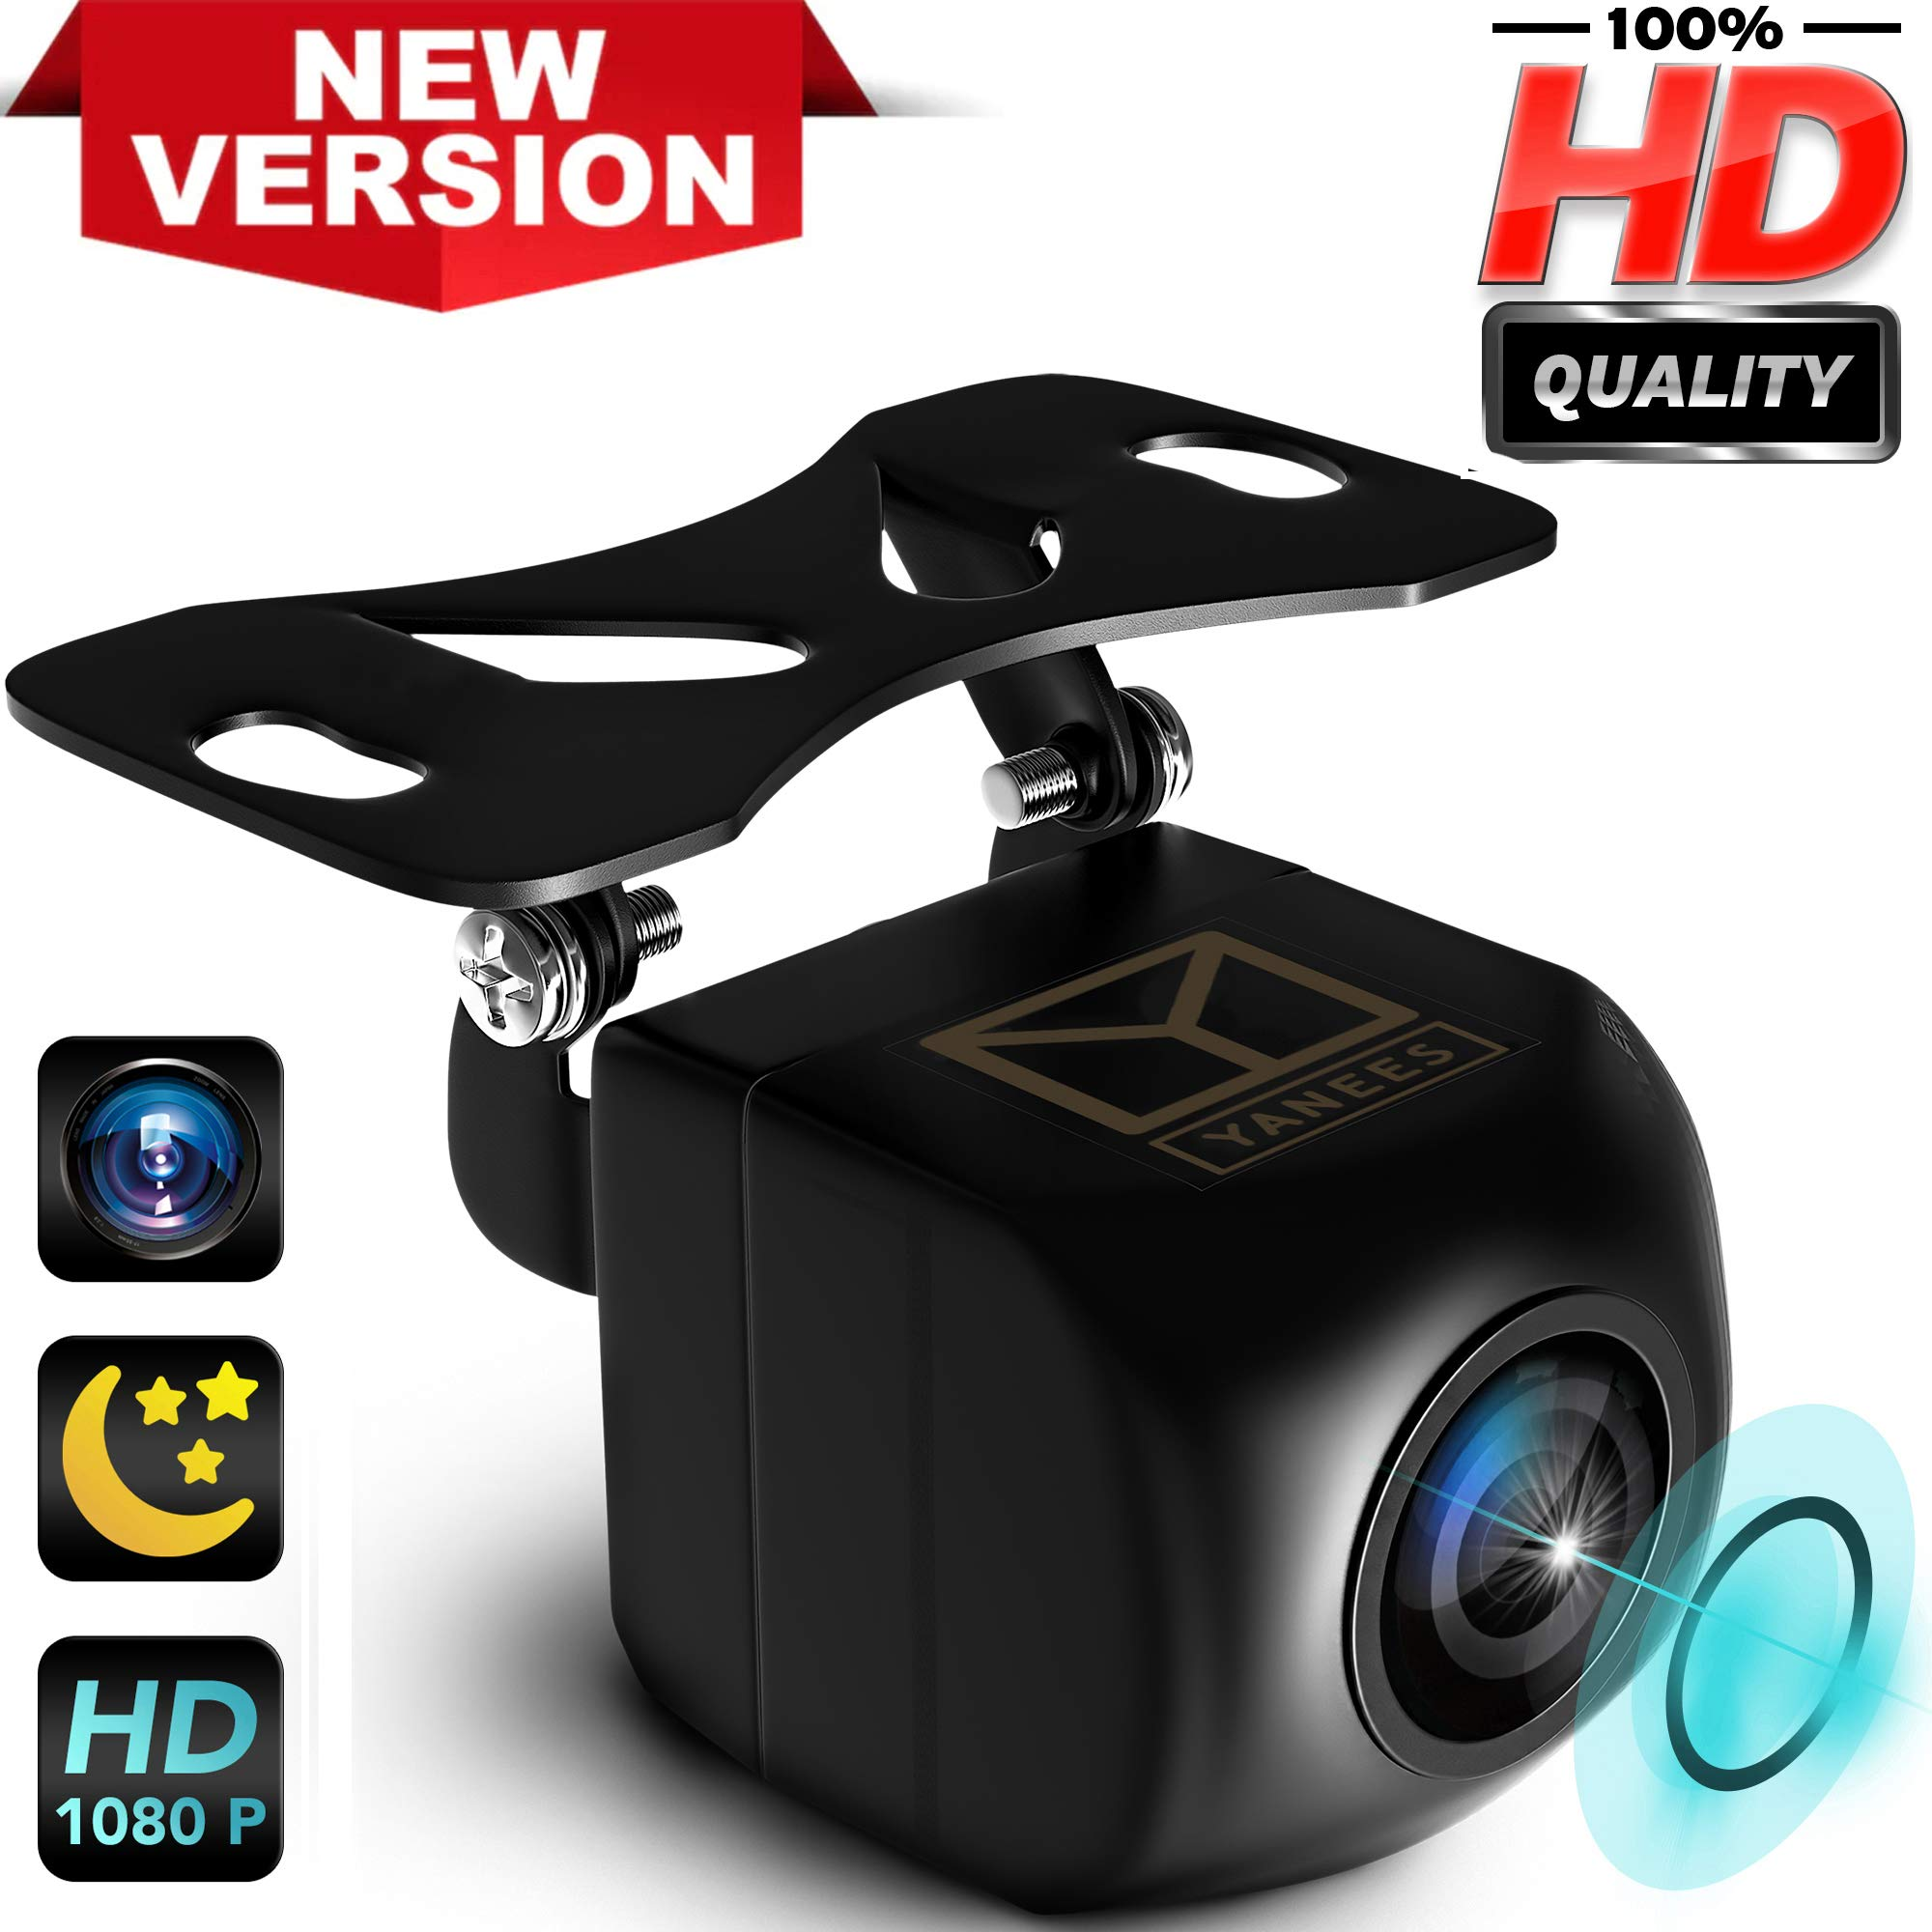 Backup Camera Night Vision - HD 1080p - Car Rear View Parking Camera - Best 170° Wide View Angel - Waterproof Reverse Auto Back Up Car Backing Camera - High Definition - Fits All Vehicles by Yanees by YANEES (Image #10)